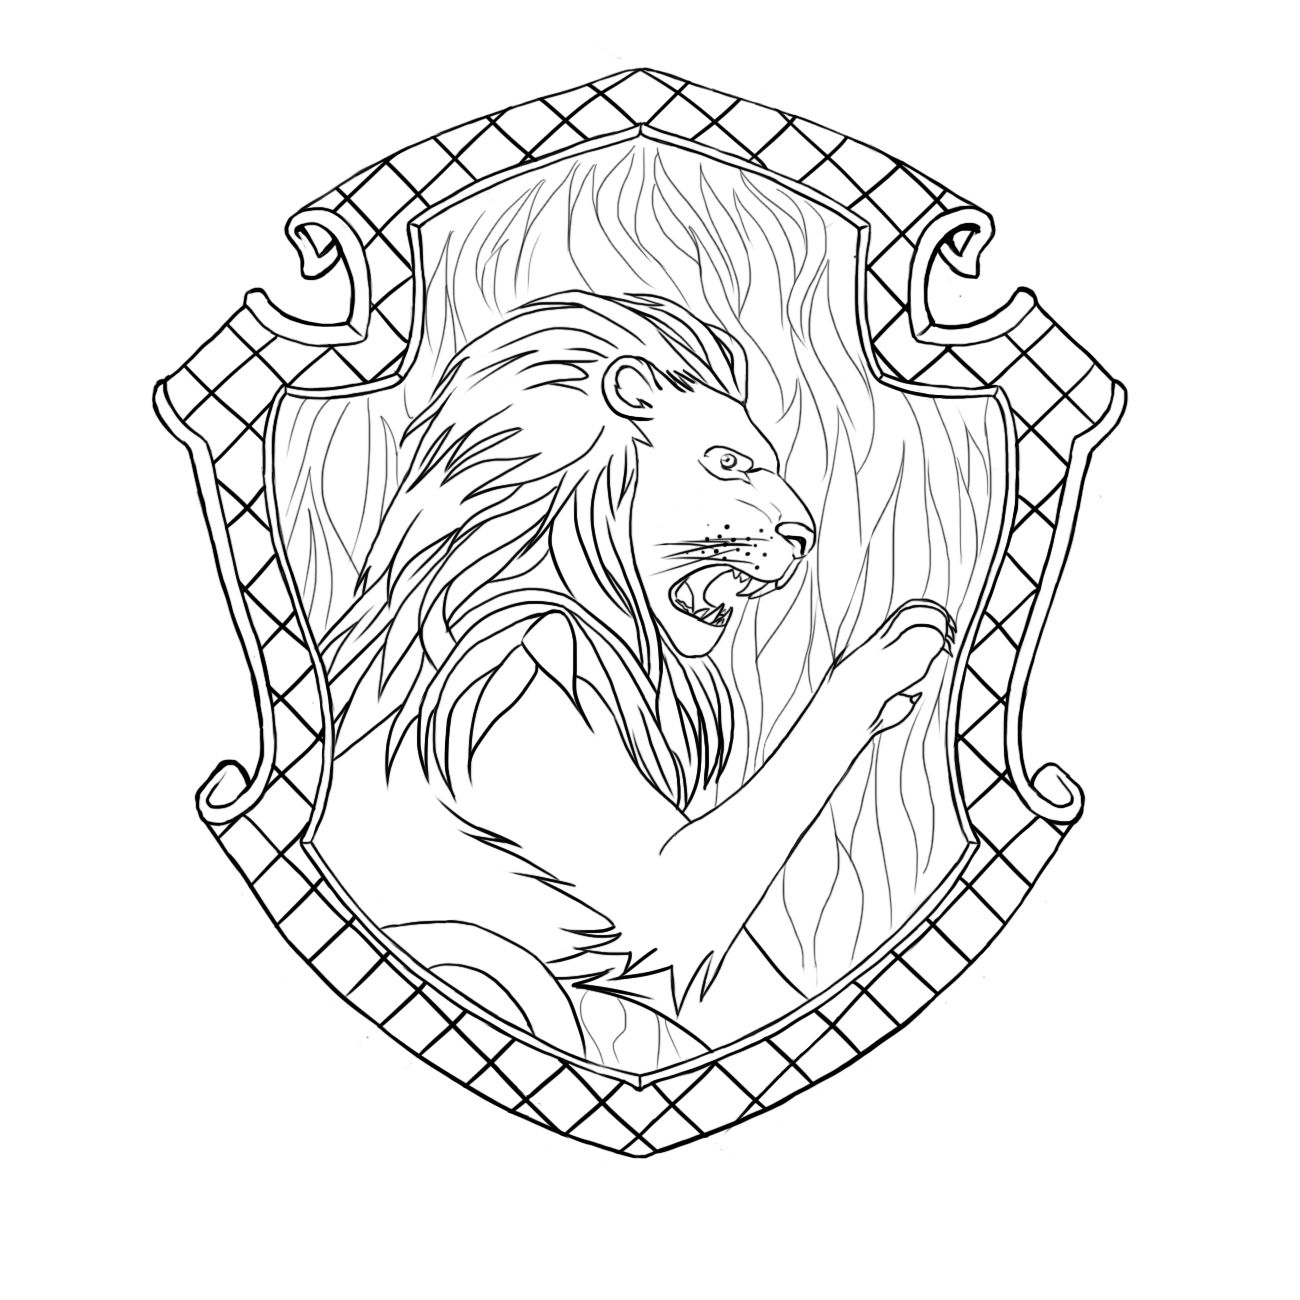 Pottermore Insider Harry Potter Coloring Pages Harry Potter Coloring Book Harry Potter Colors